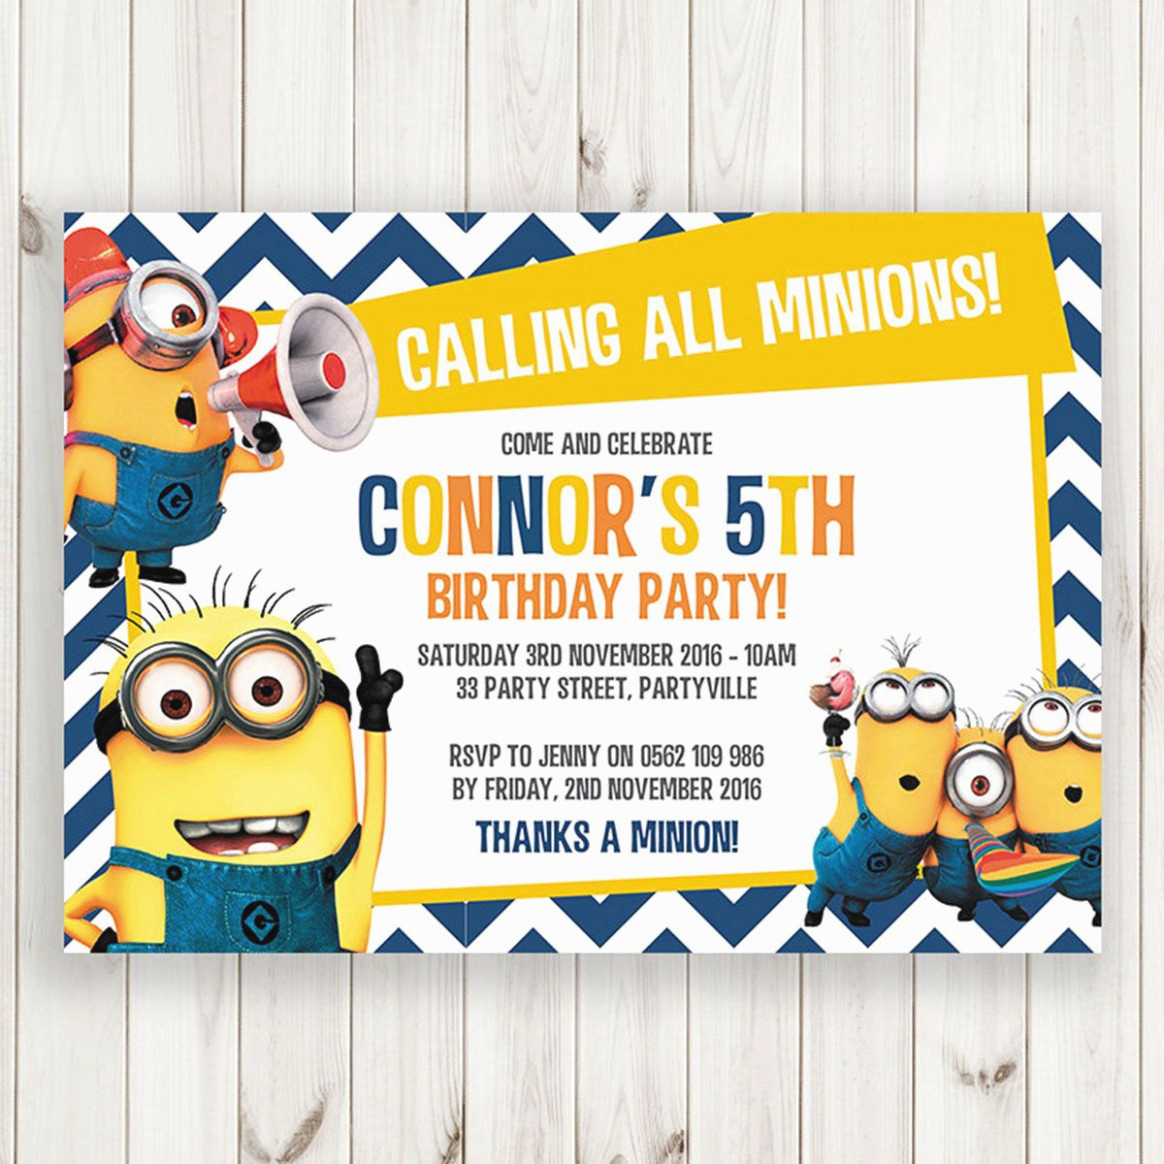 Minions Birthday Invitation Maker Best Of 15 Reasons why Minion Return